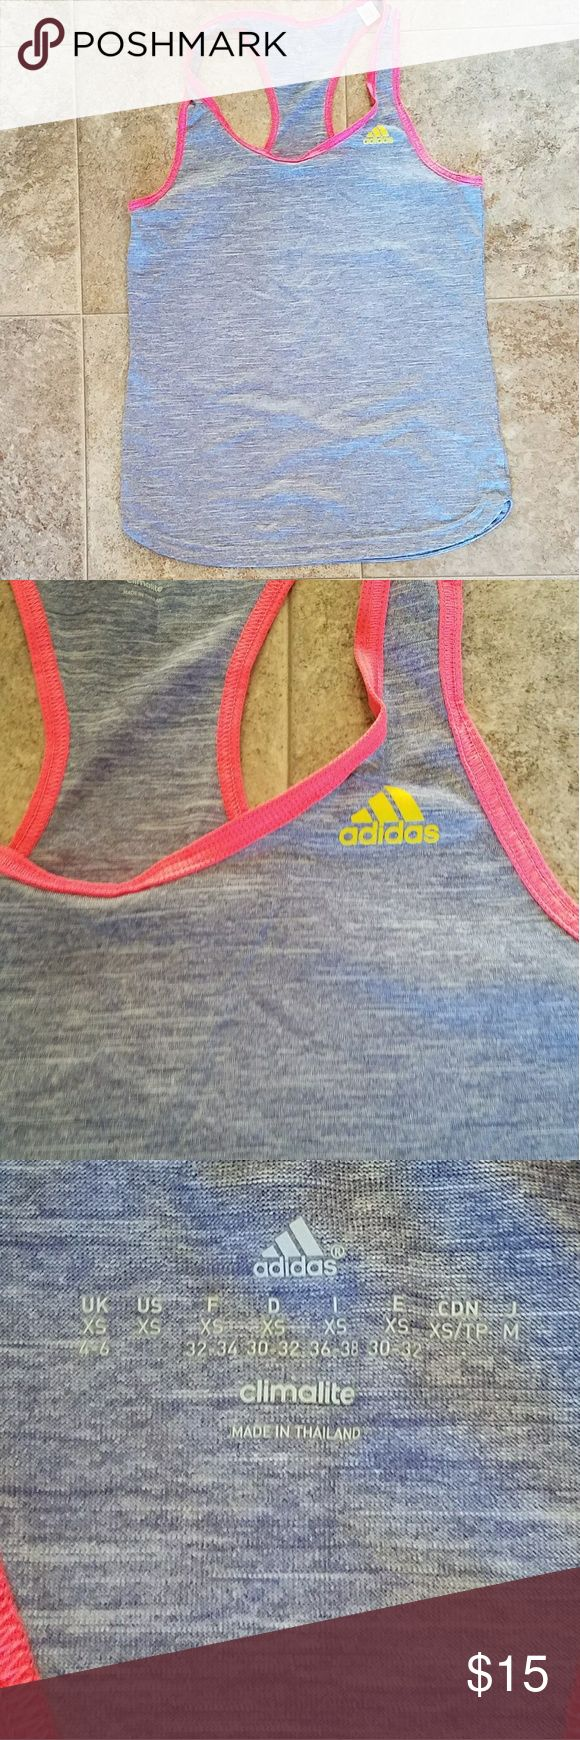 Adidas Climalite tank top Adidas Climalite tank top. VEUC. Size XS. Very ligjt and perfect for summer running! adidas Tops Tank Tops